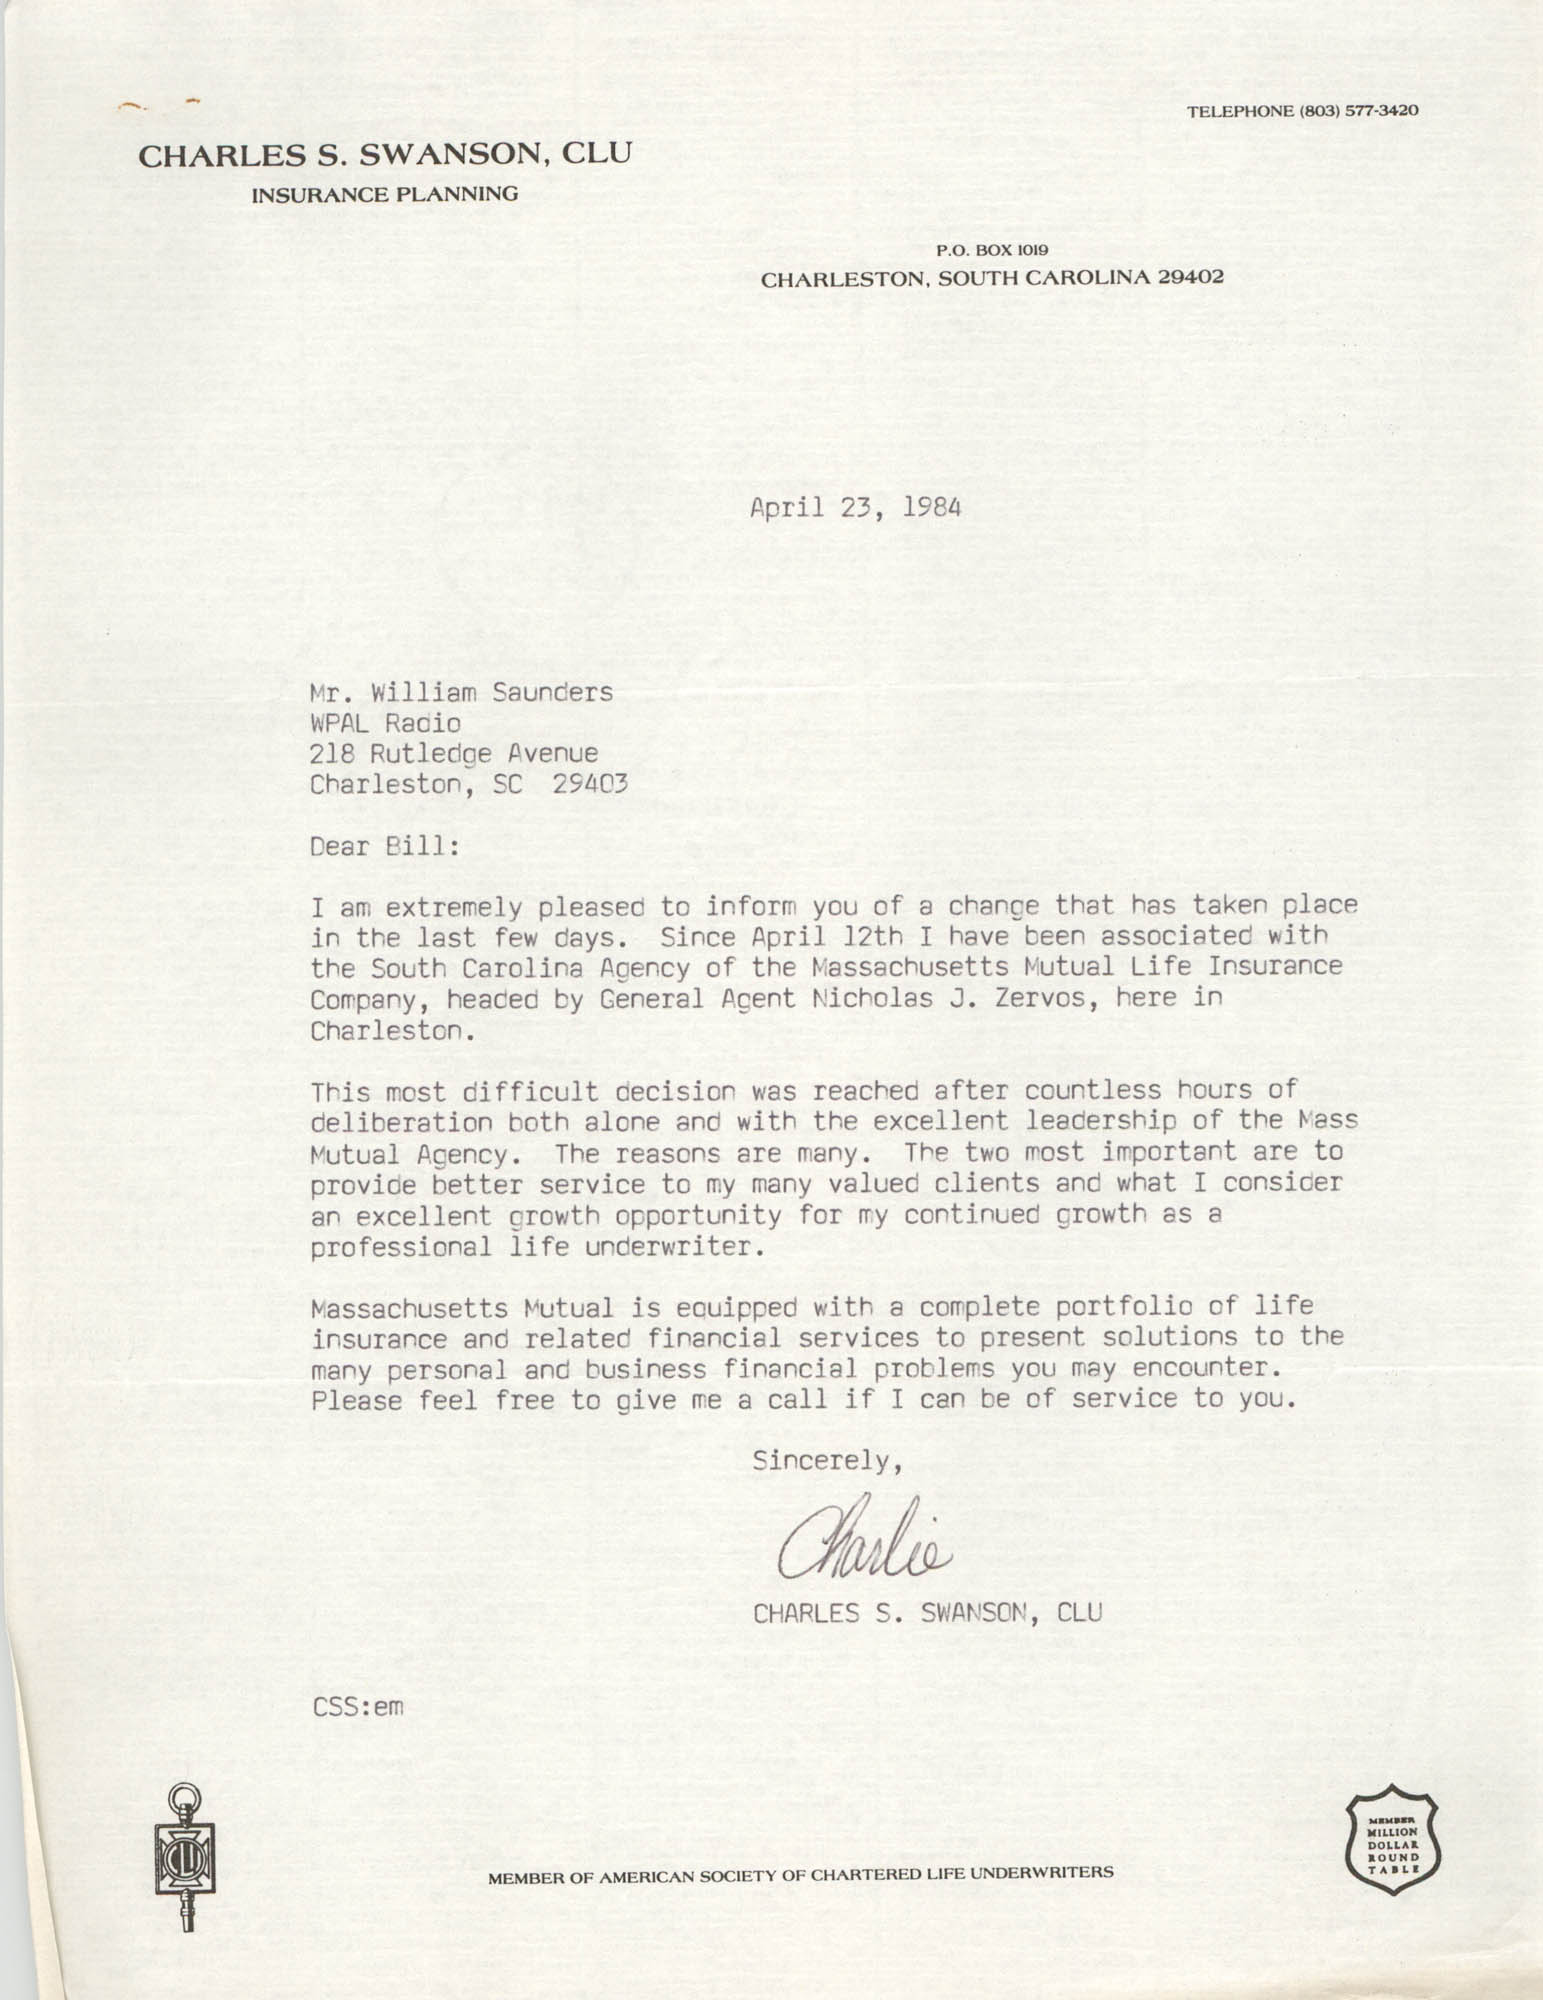 Letter from Charles S. Swanson, April 23, 1984